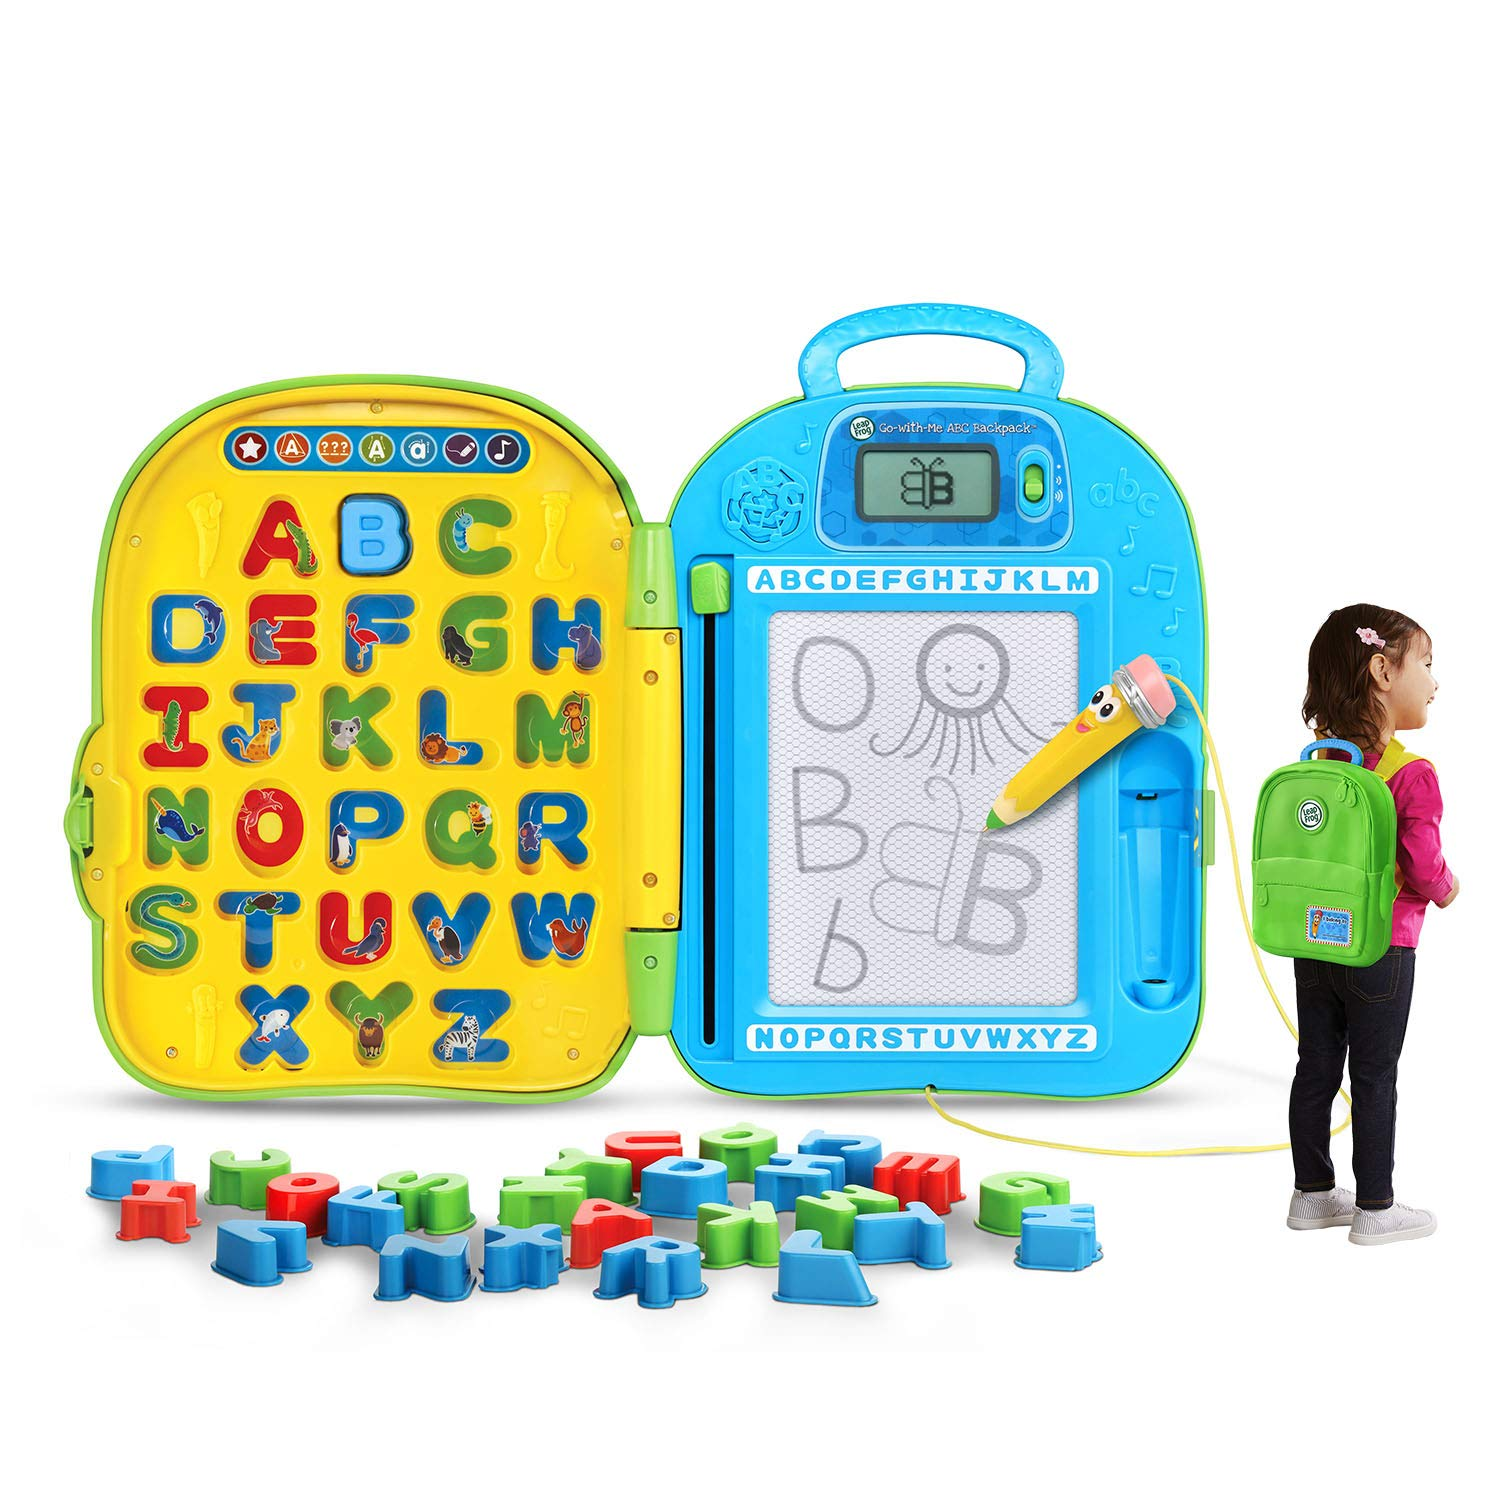 Go-with-me Abc Backpack (Embalaje Gratuito De Frustra...